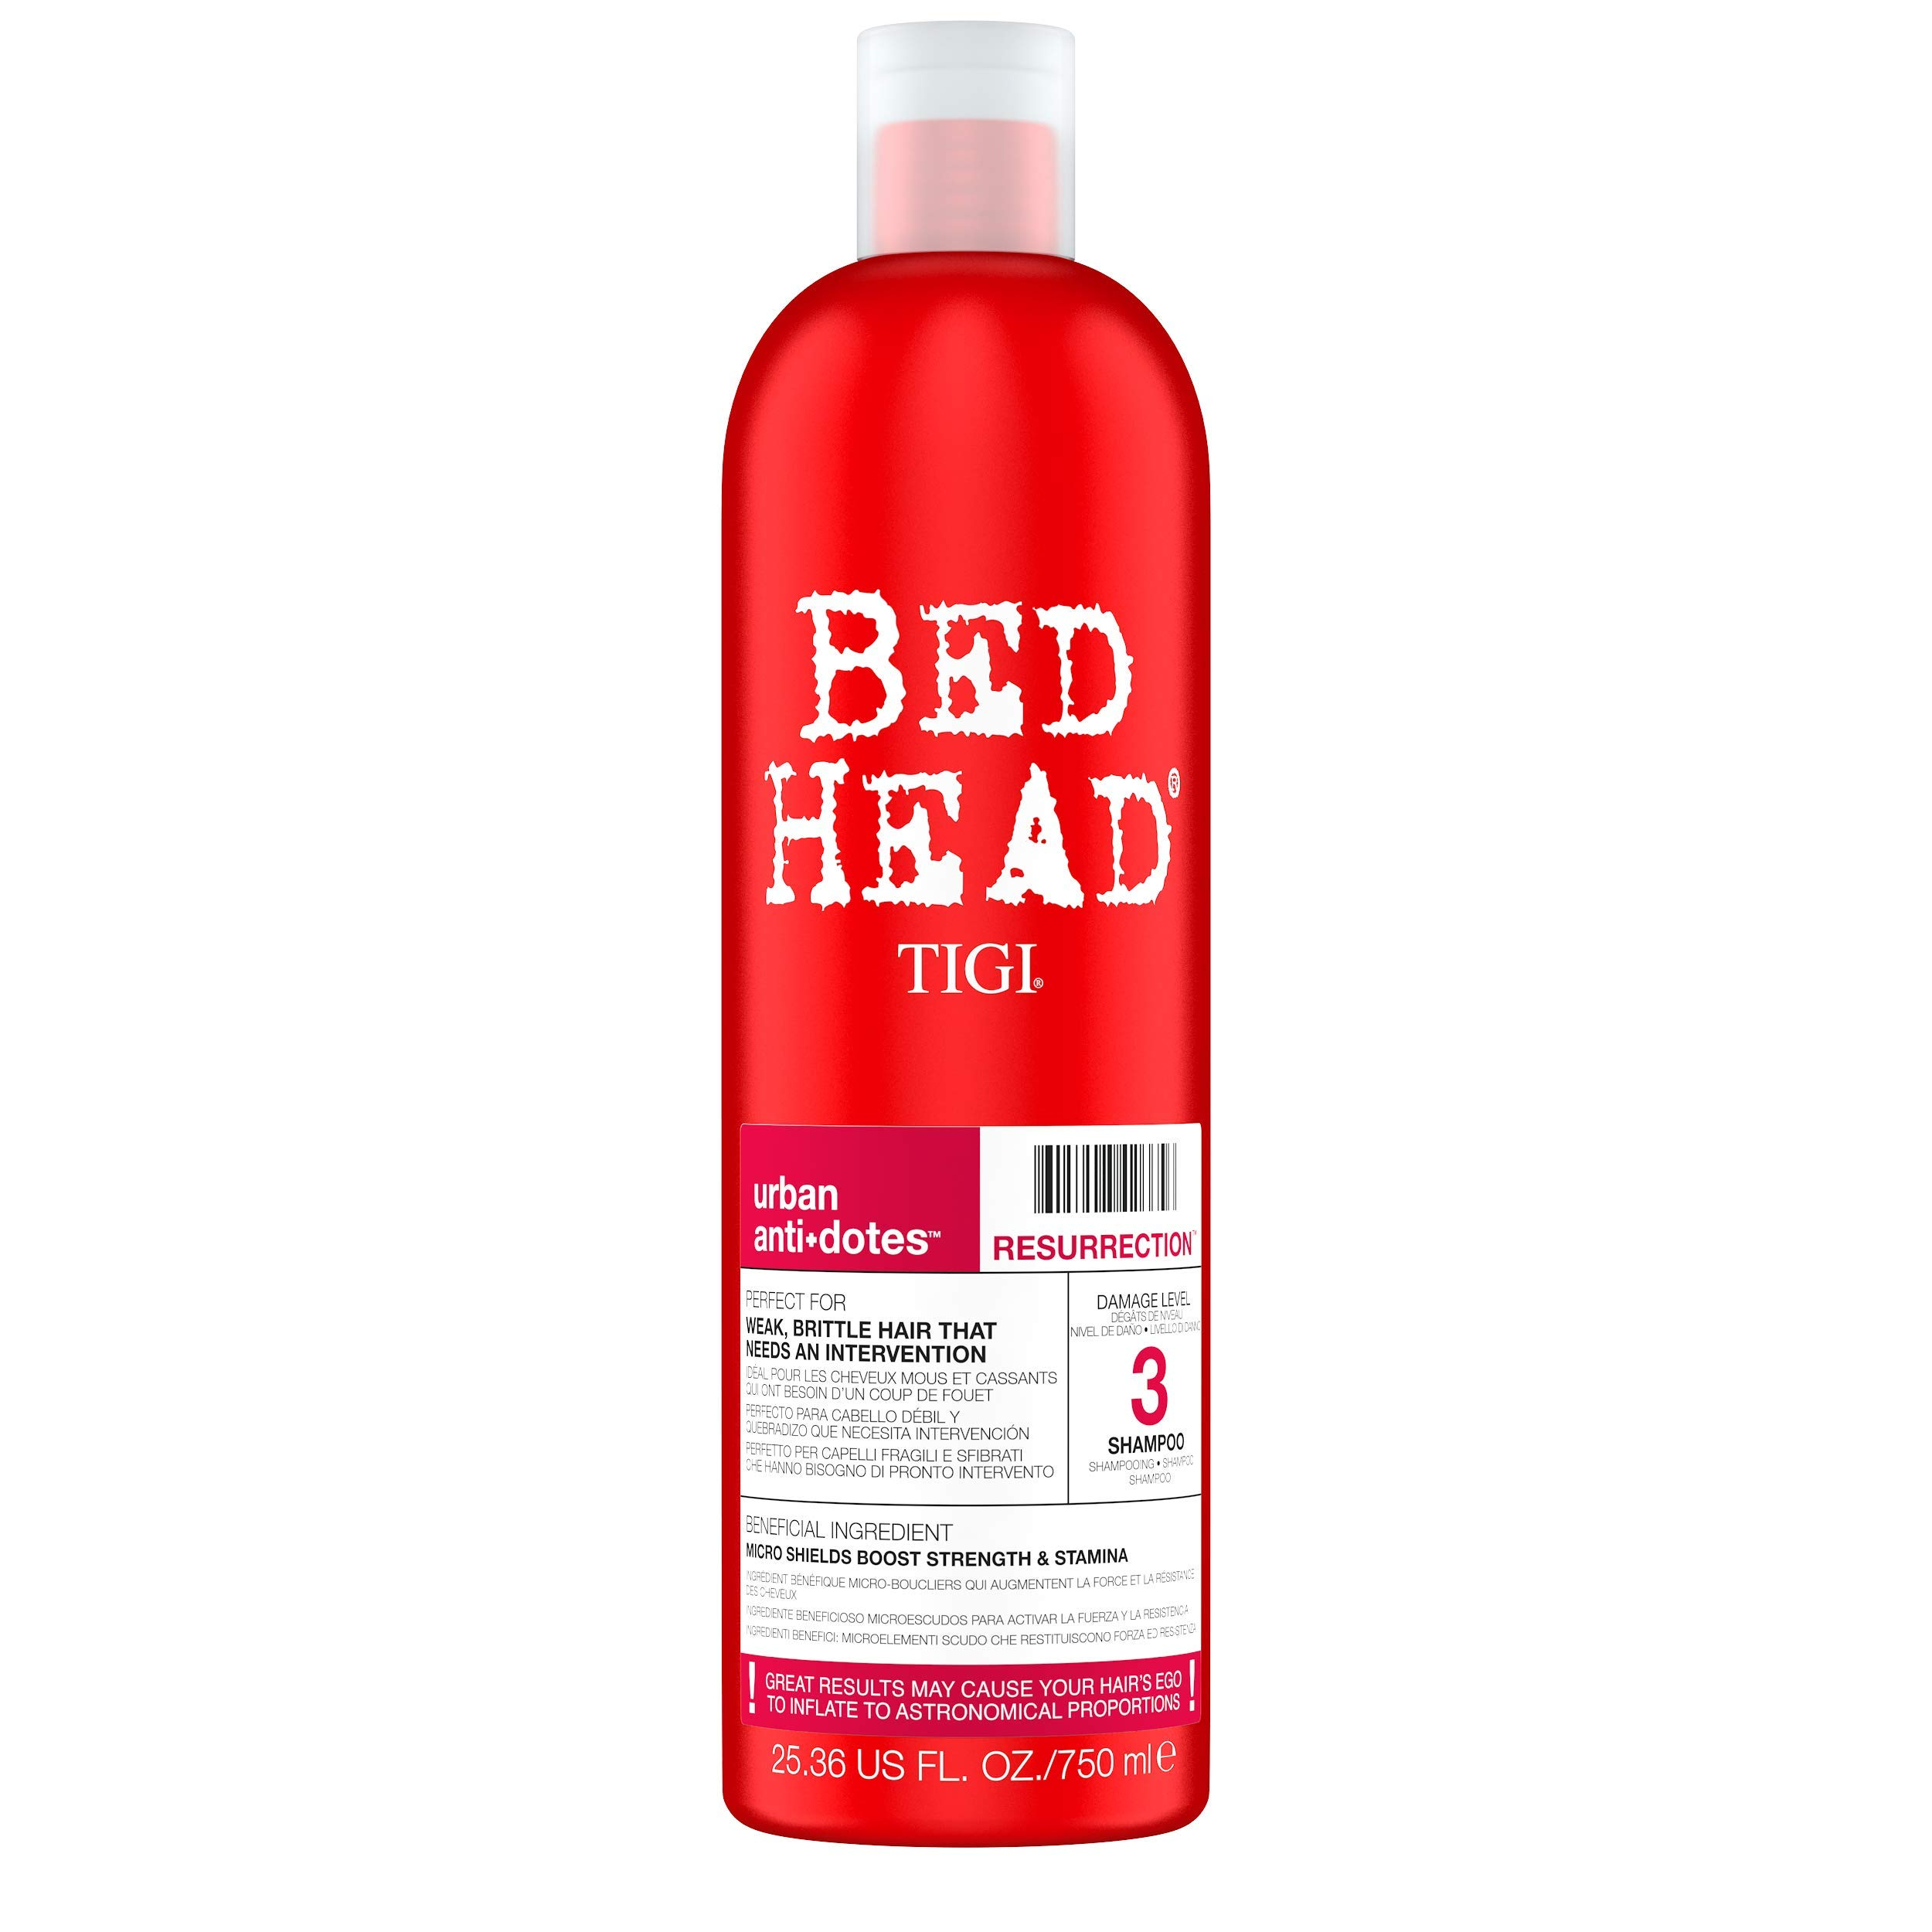 Bed Head by TIGI Champú Resurrection Urban Antidotes 750 ml product image